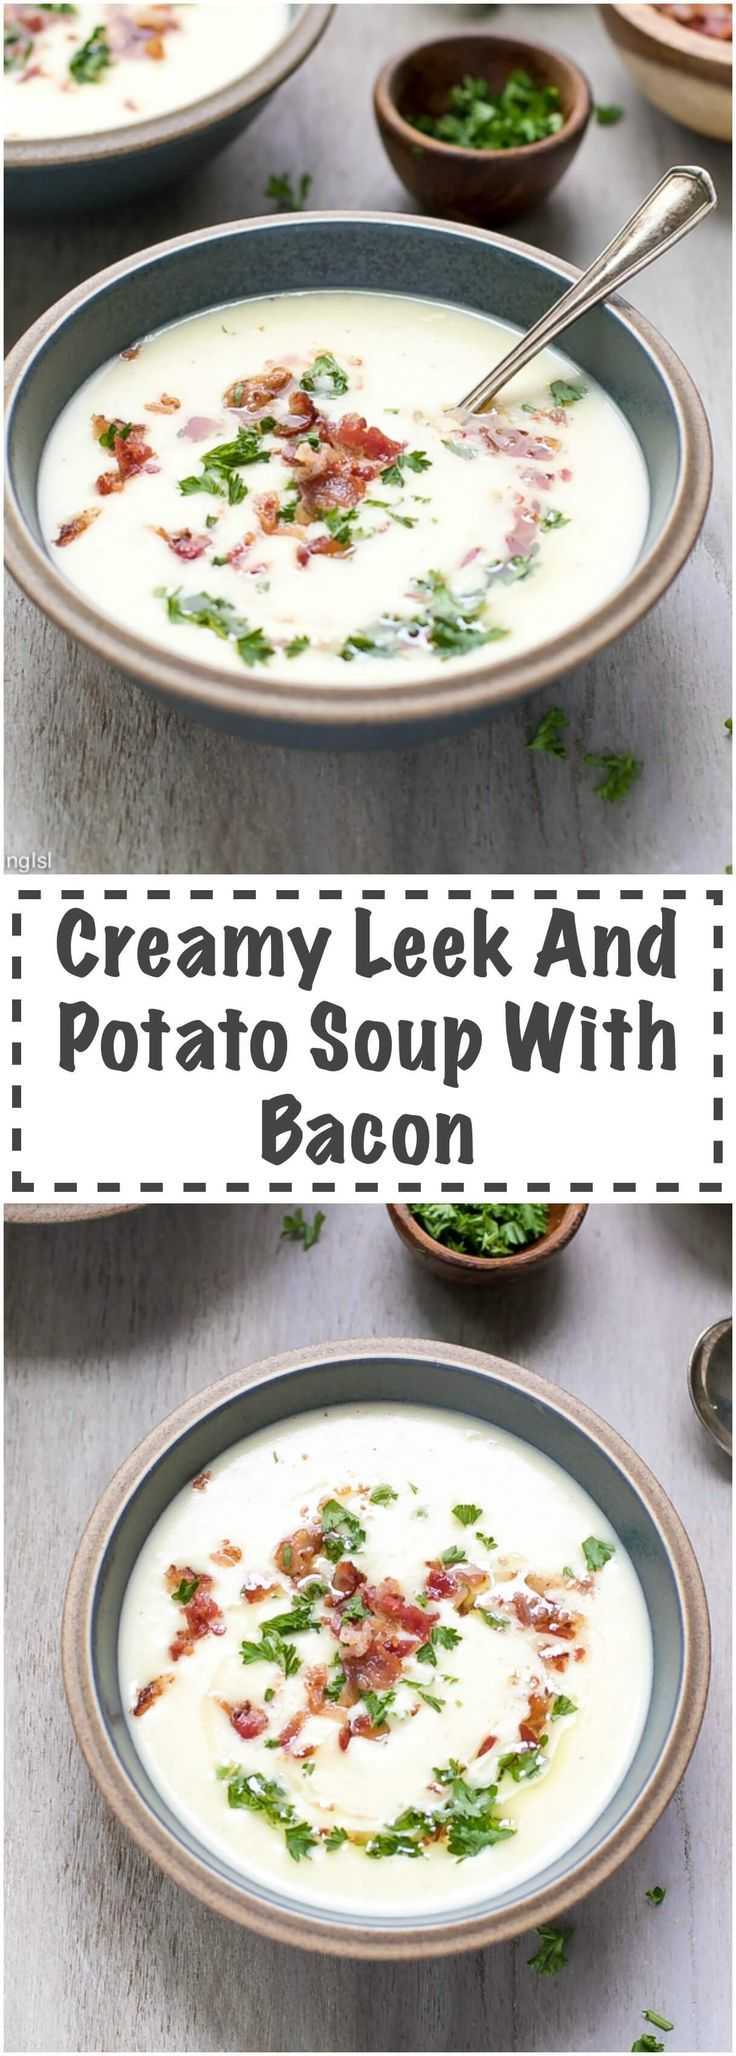 Creamy Leek and Potato Soup with Bacon